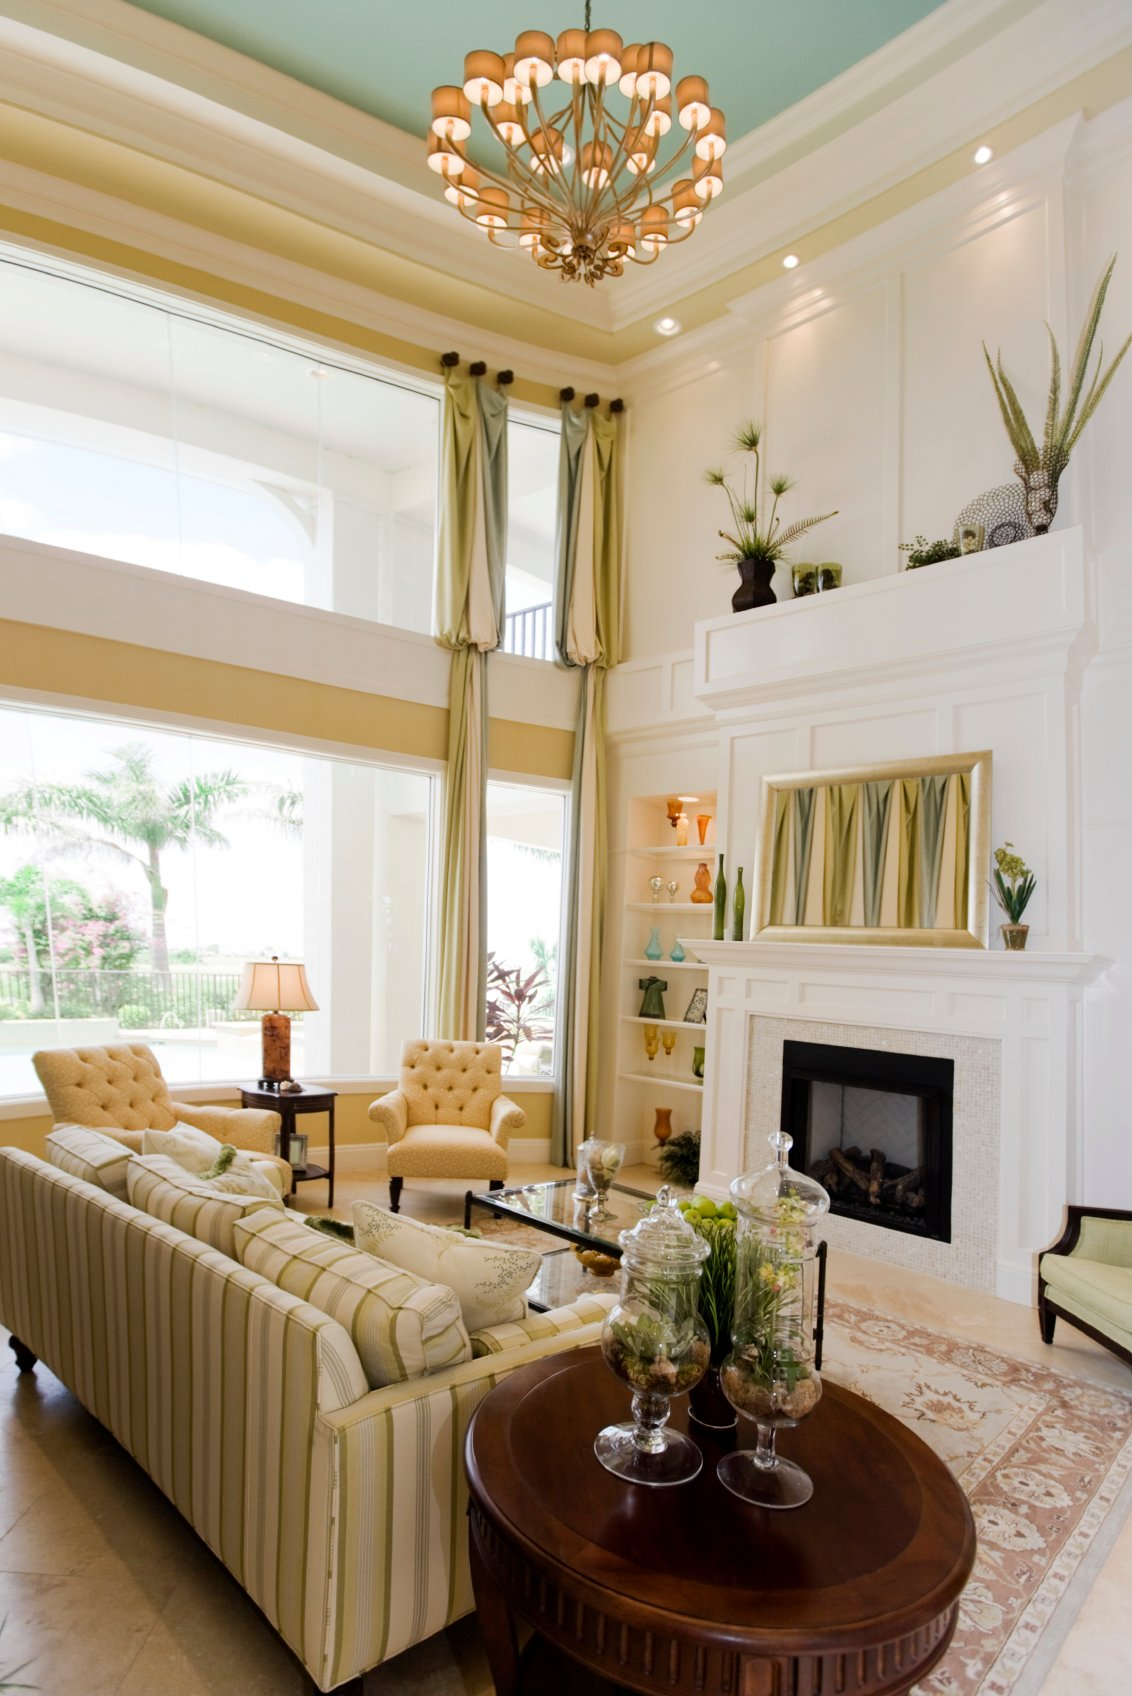 Bright yellow and white color scheme of this living room helps natural light illuminate the large space. Marble flooring, white tile fireplace surround, and carved wood tables join an array of citrus toned furniture.